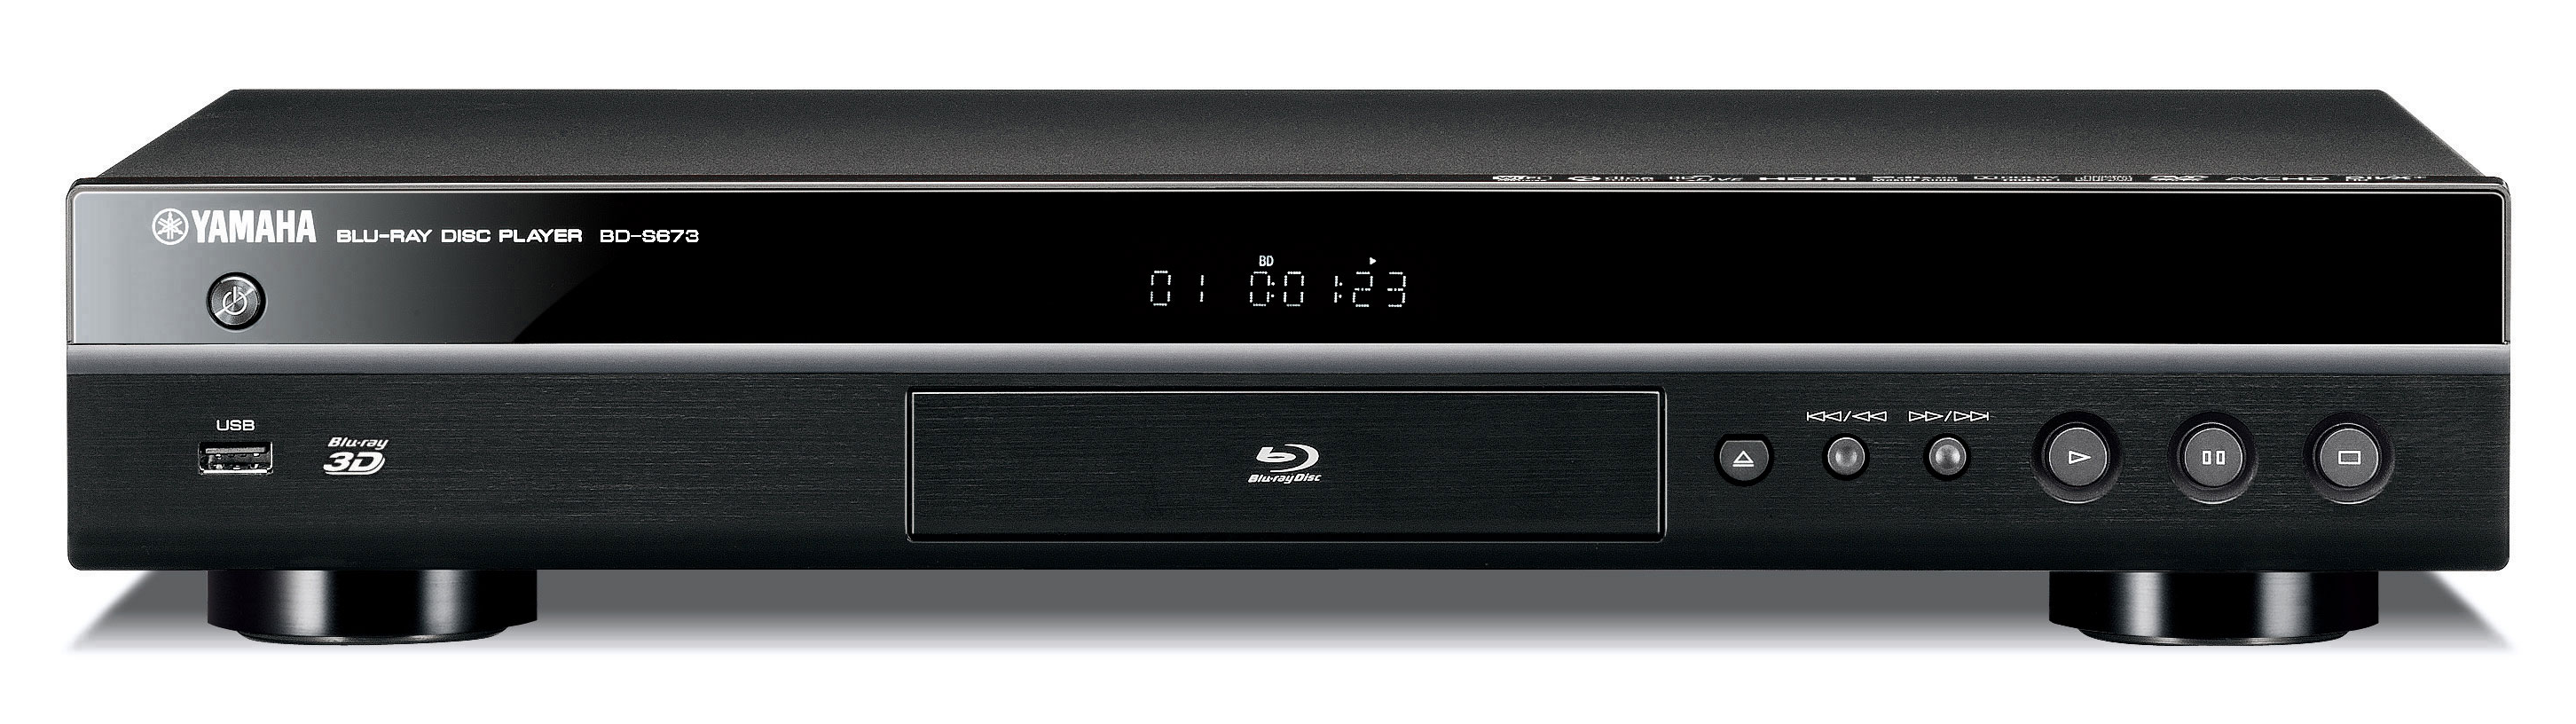 Yamaha BD-S673 Region Free Blu Ray Player